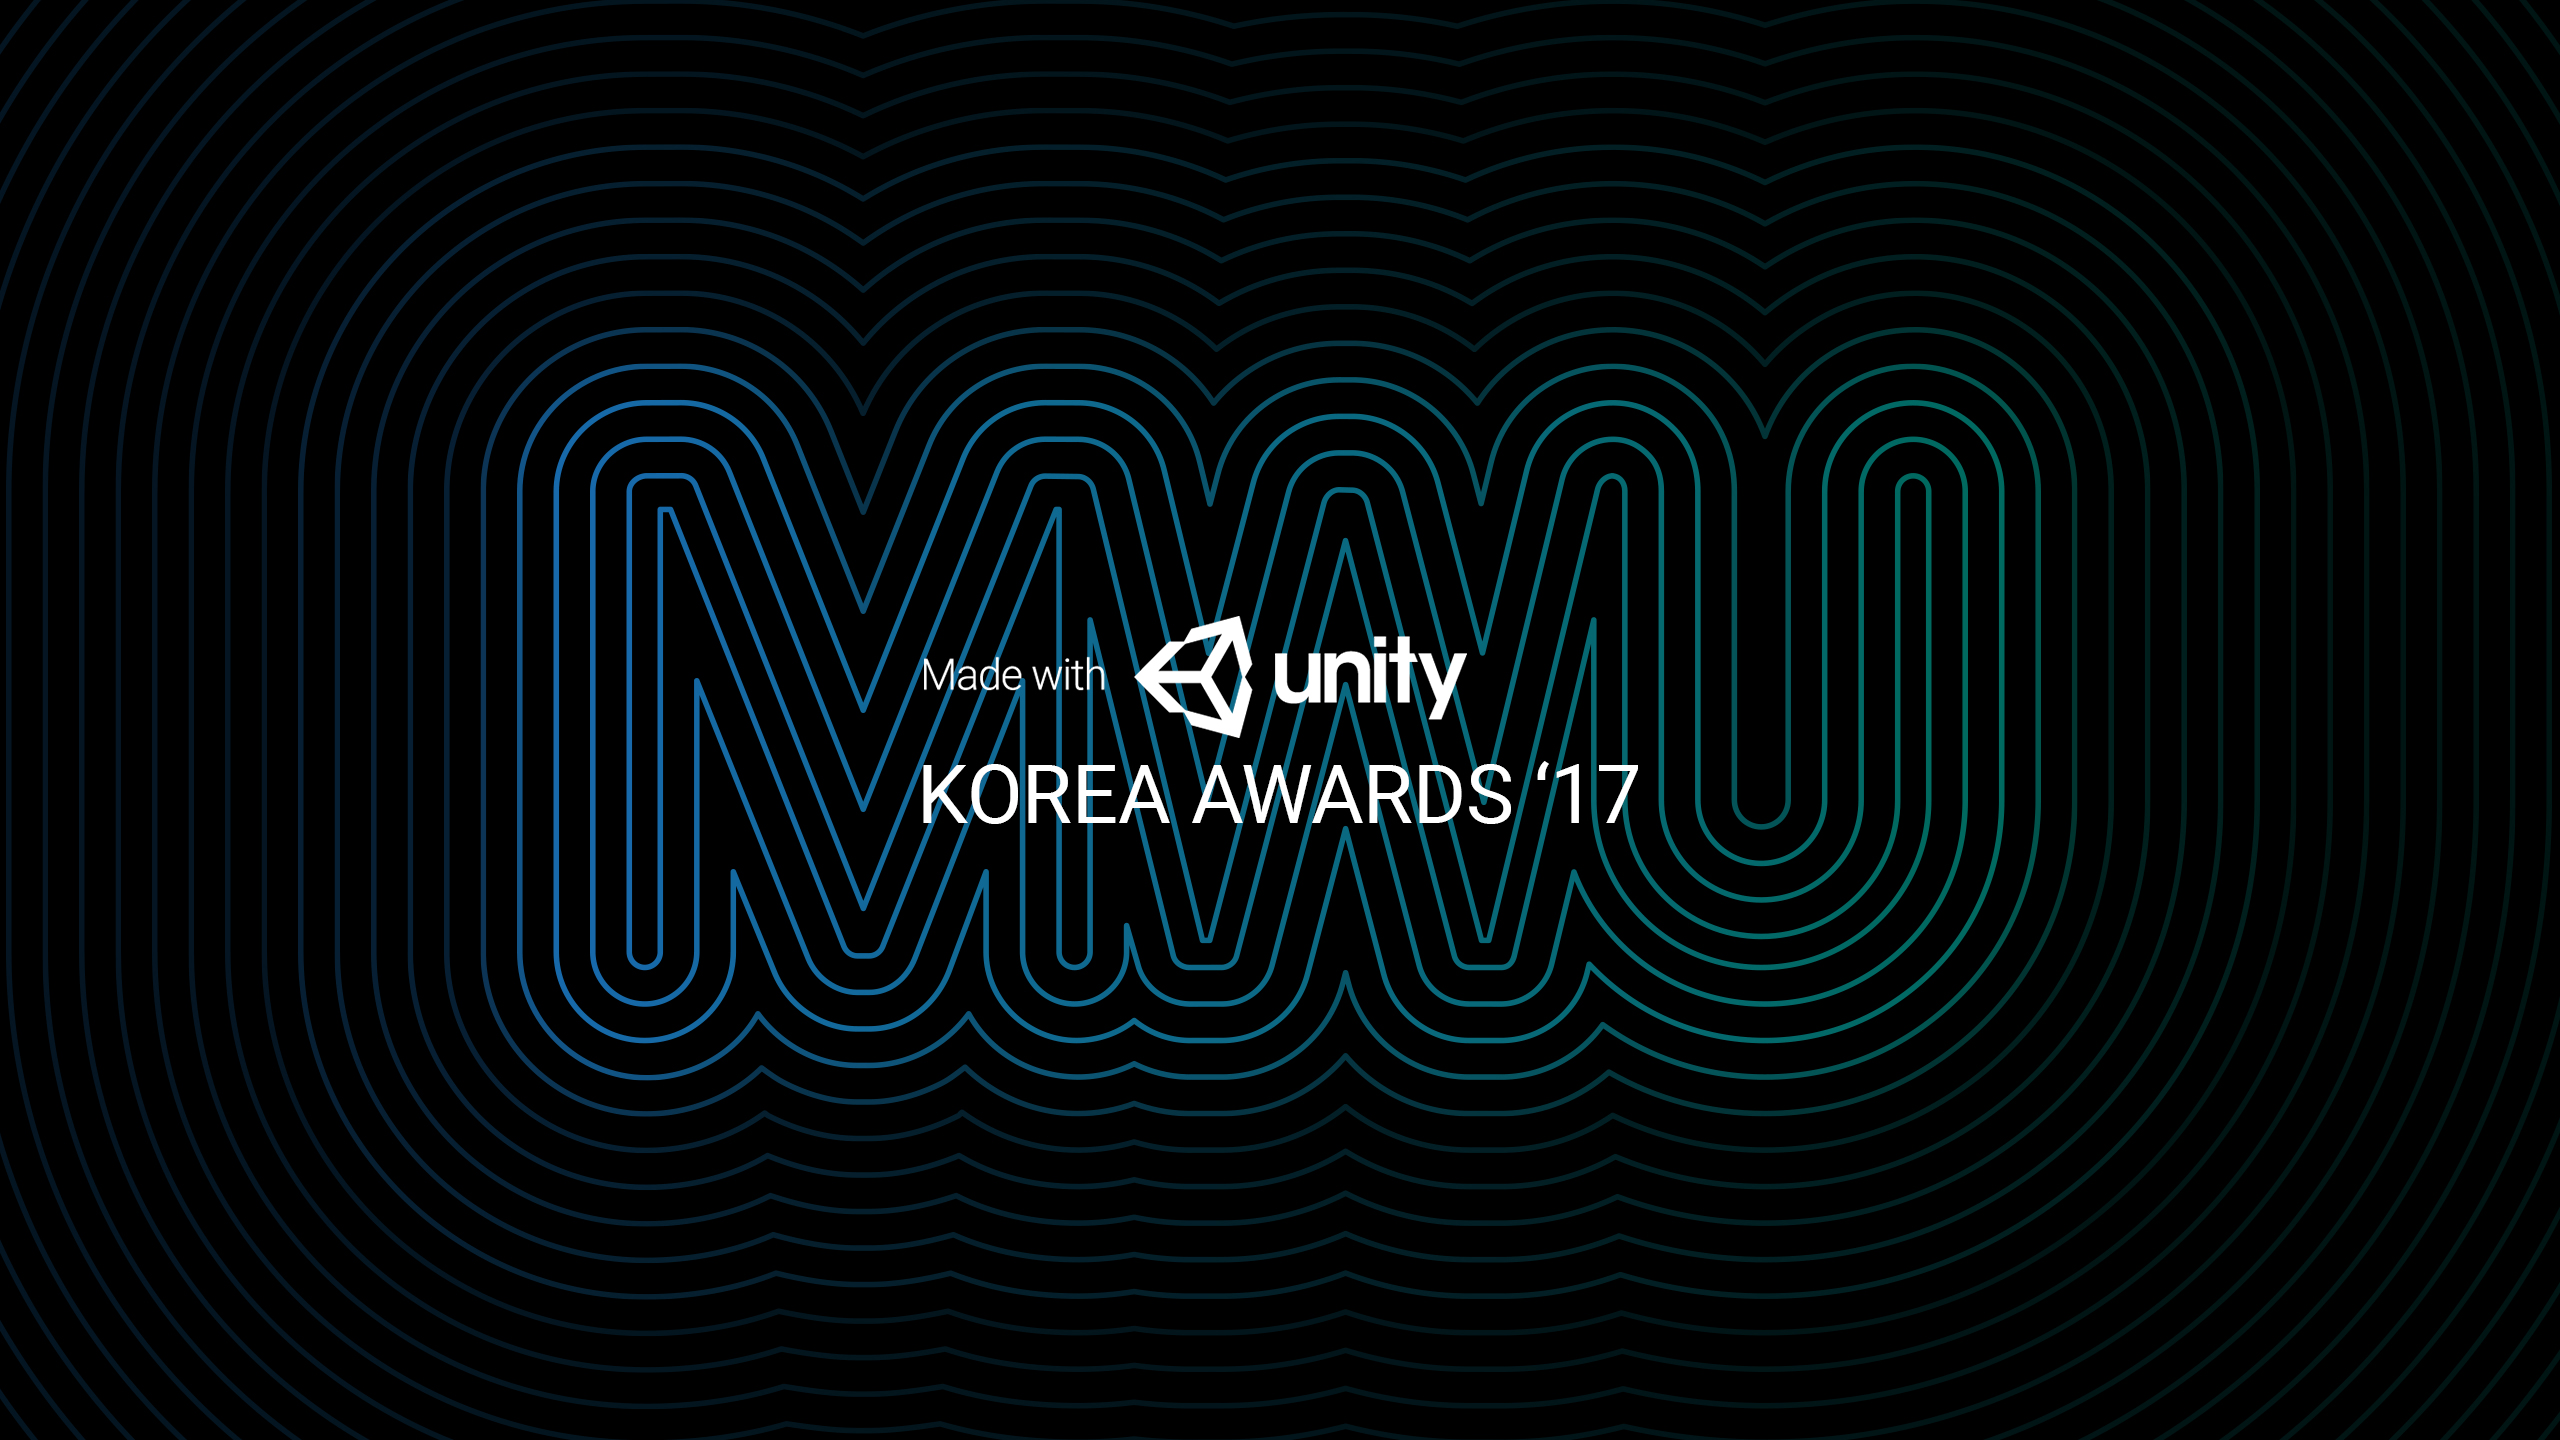 Made with Unity Korea